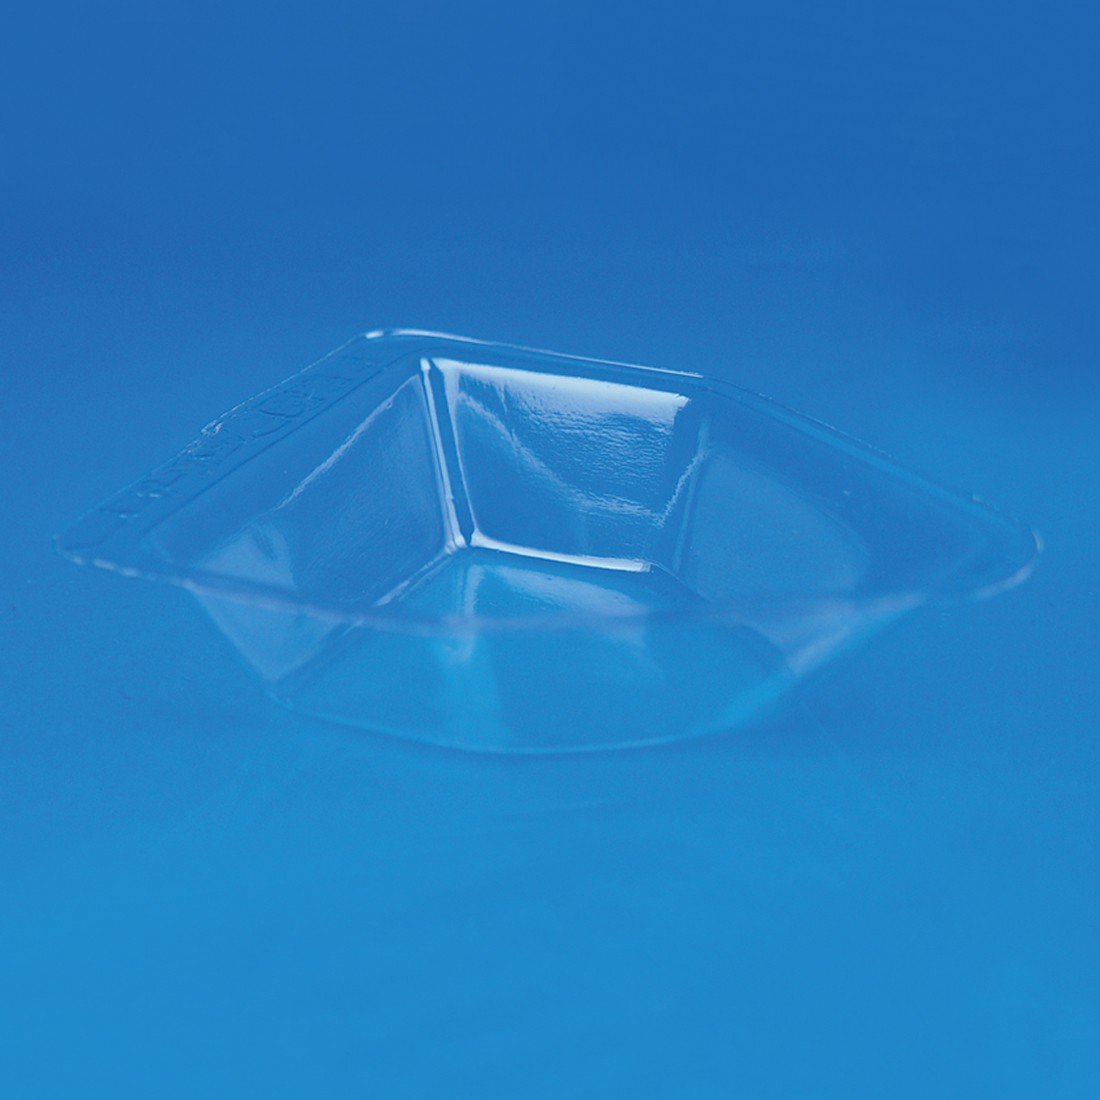 Plastic weighing dish (1 carton)